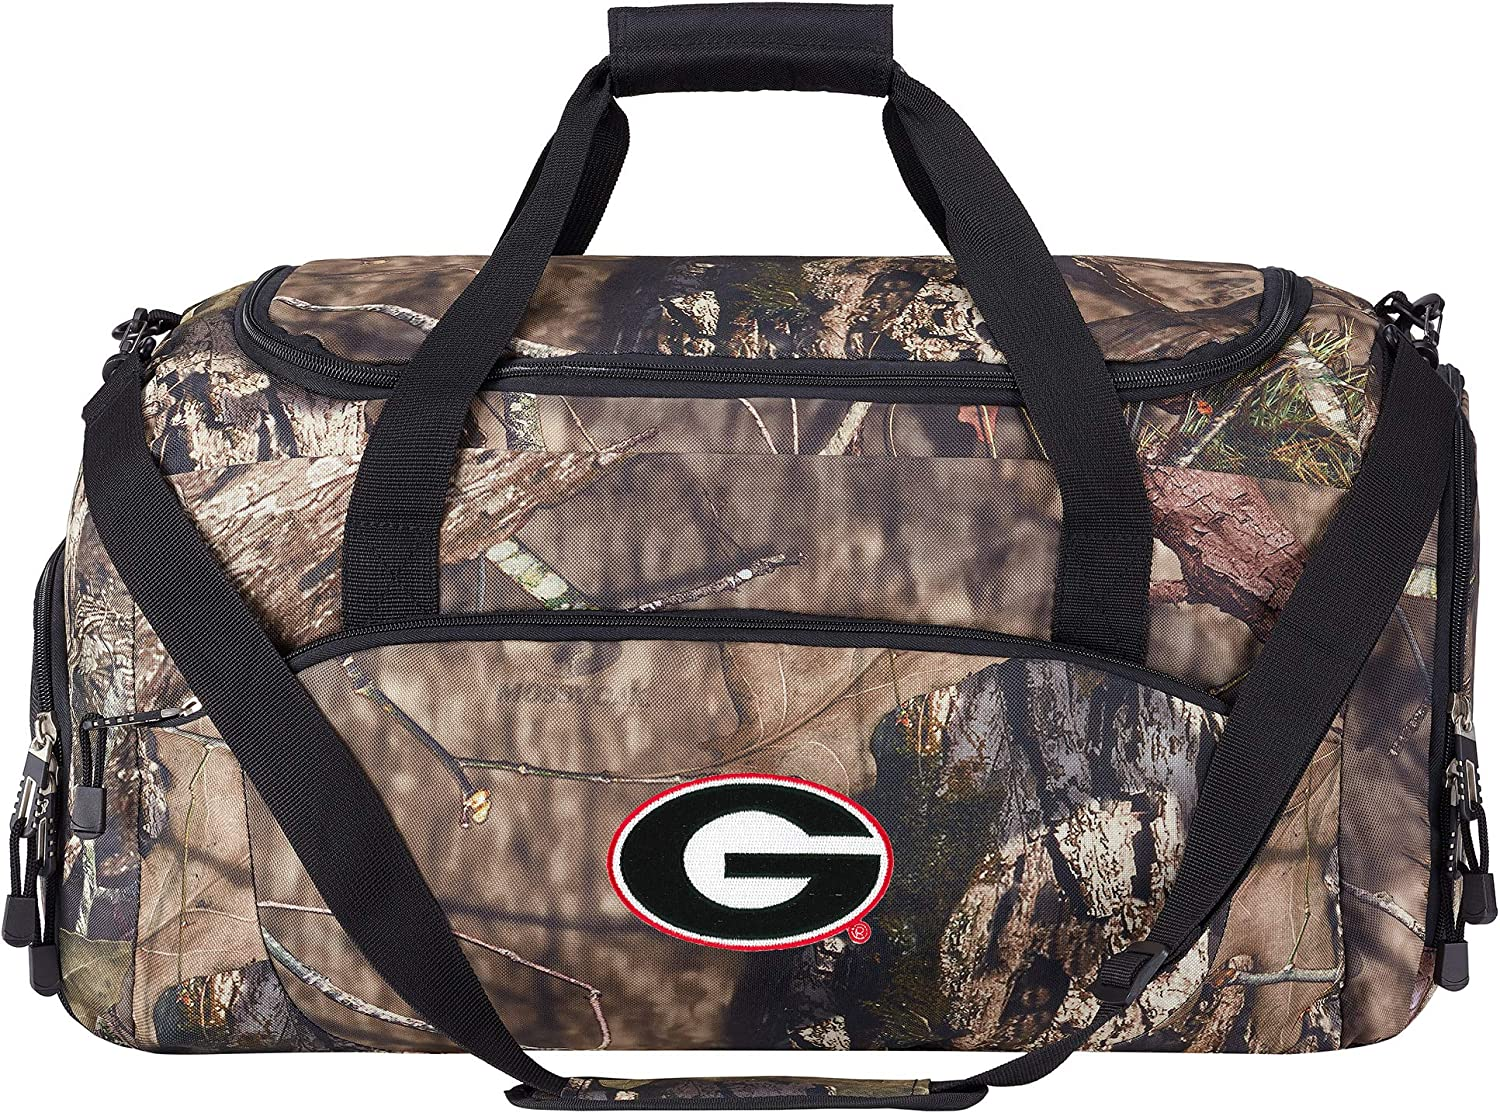 "THE NORTHWEST COMPANY Officially Licensed NCAA Basecamp Duffel, Mossy Oak, 20"" x 11"" x 12.5"""